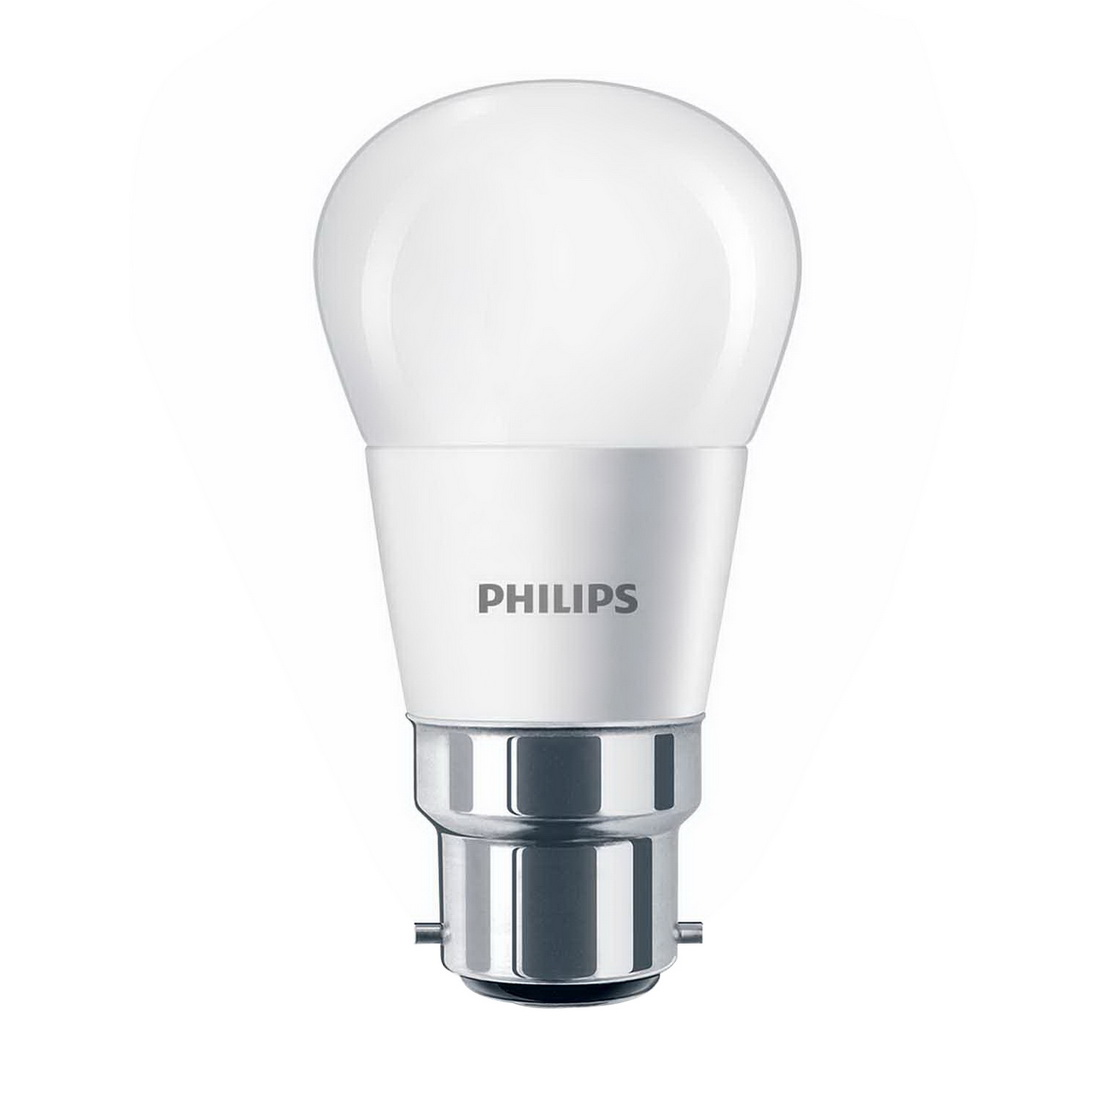 5.5W 470lm B22 2700K P45 Non-Dimmable LED Lusture Warm White Frosted